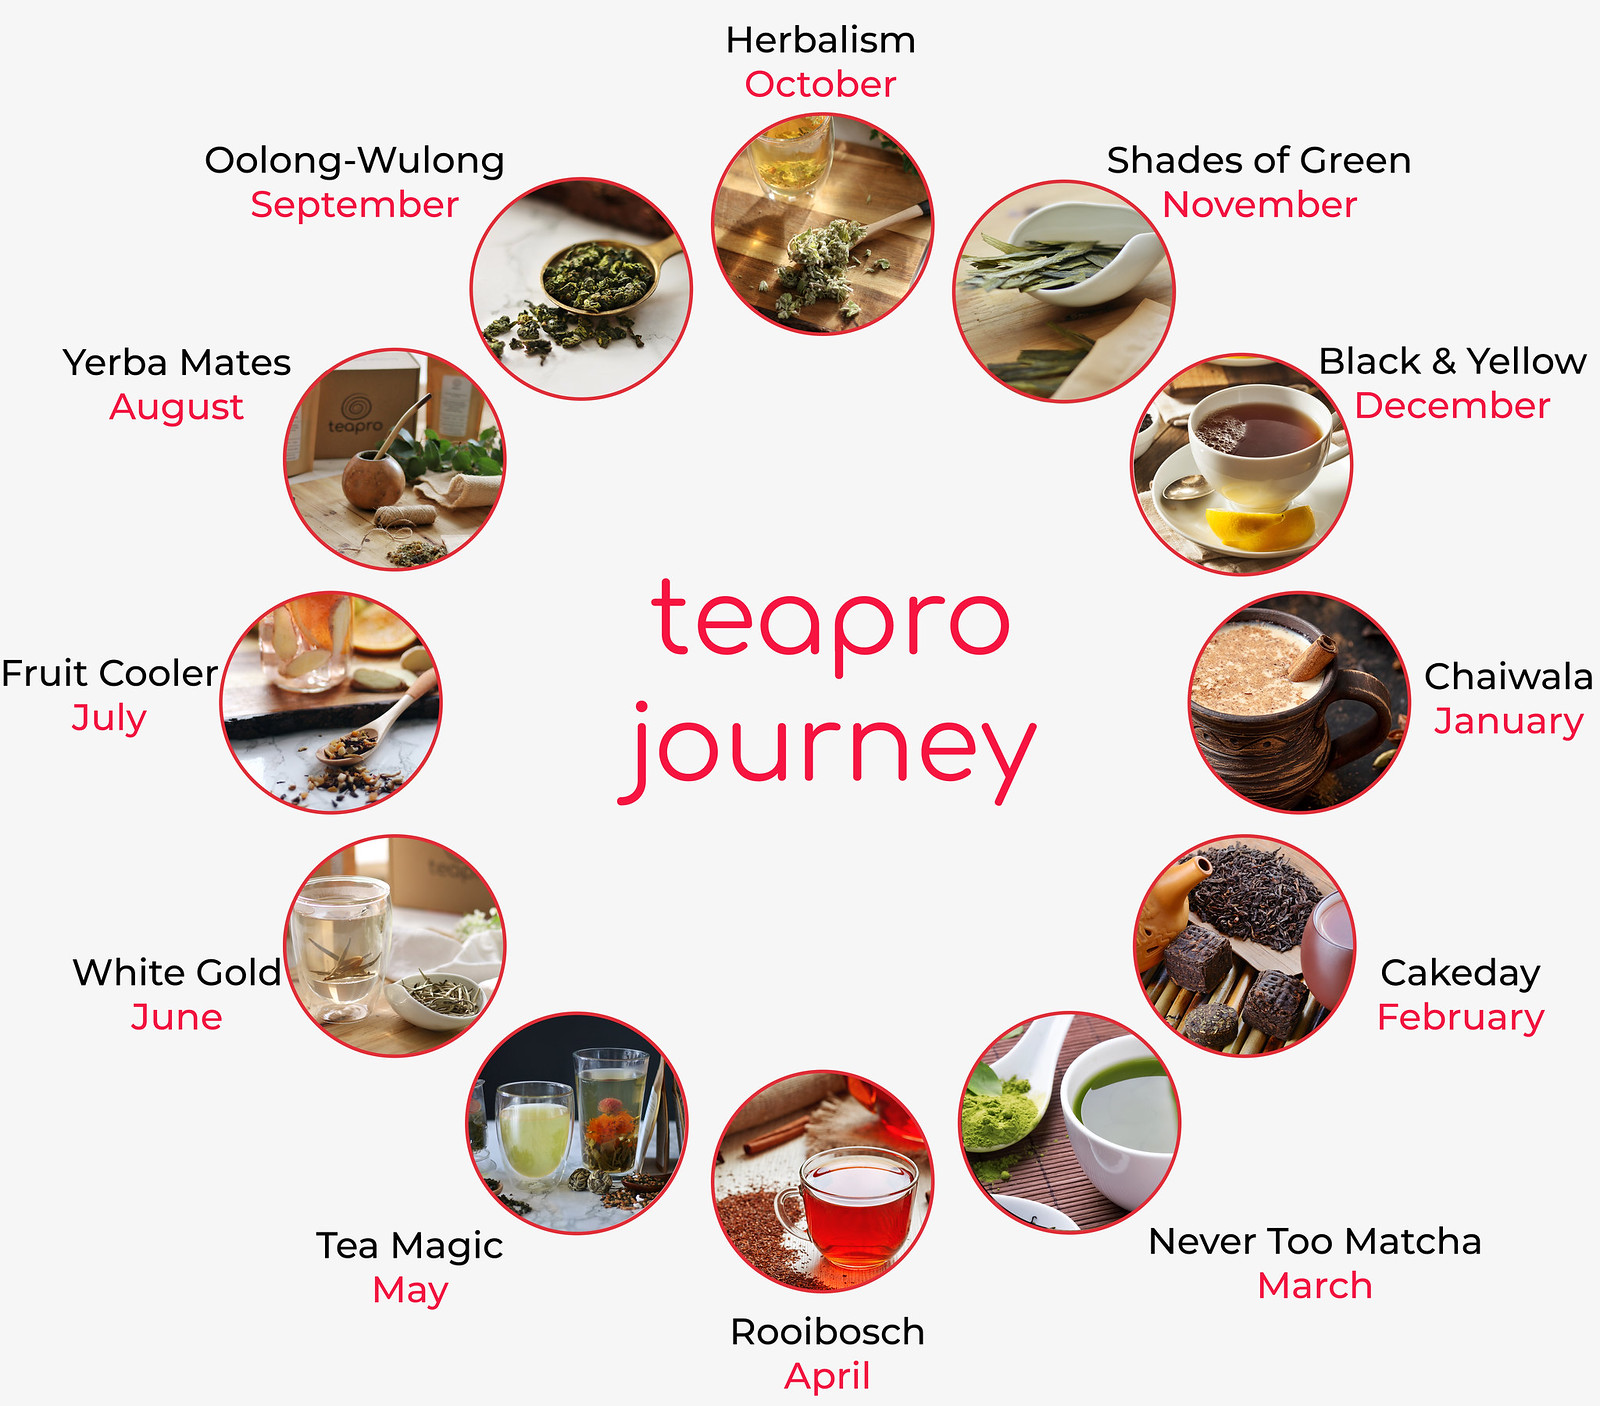 teapro tea journey